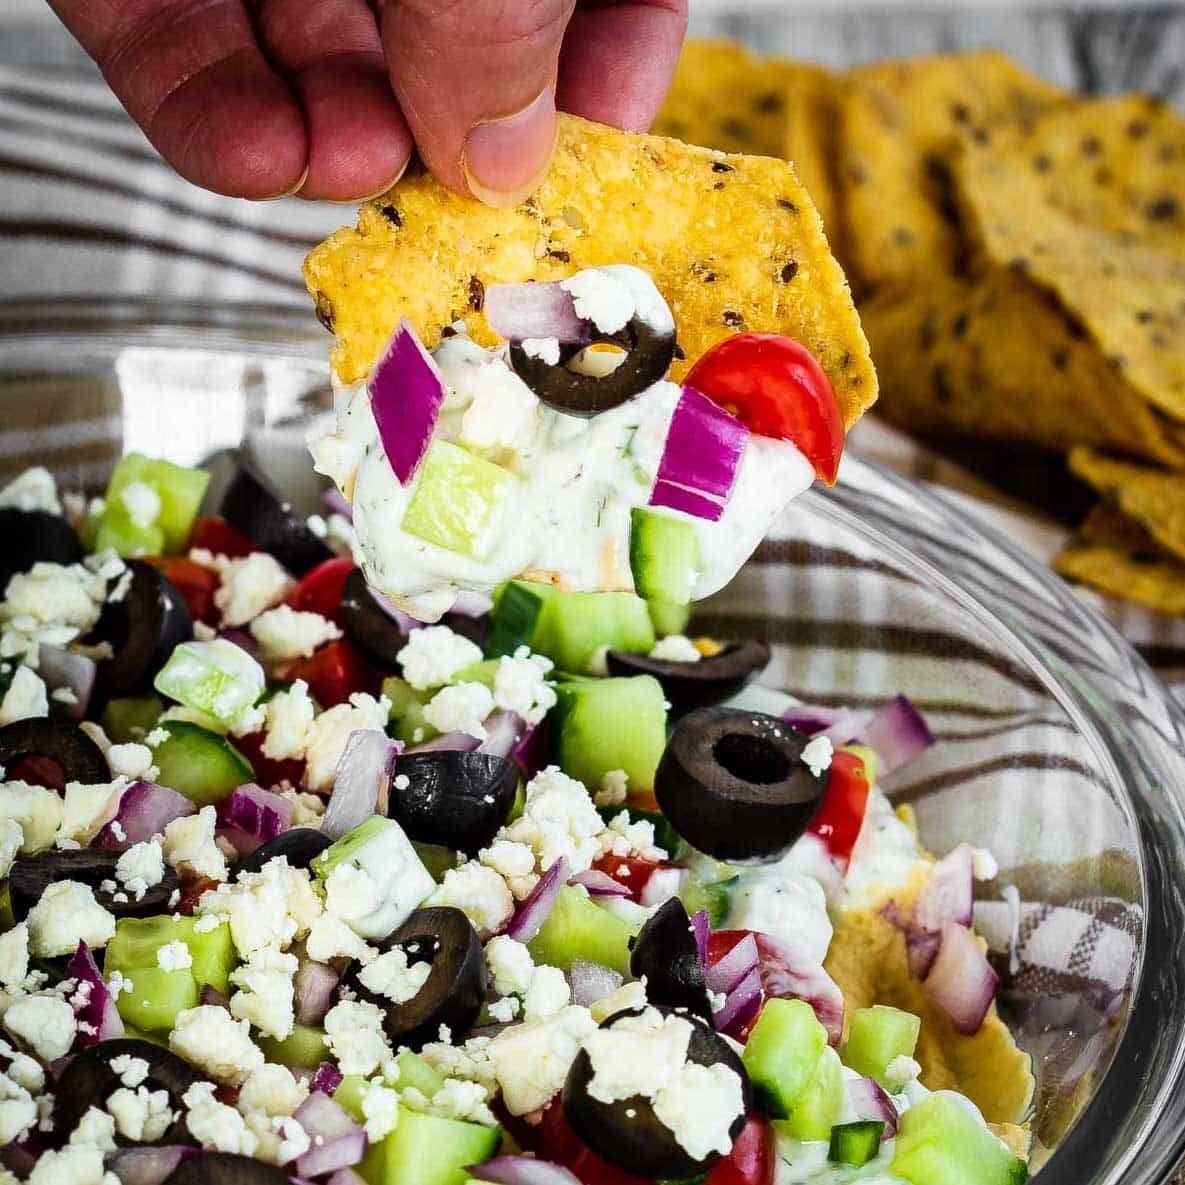 This tasty Greek 7 layer dip makes the perfect appetizer or snack. Quick and easy to make and full of flavour, it's also healthier then most dips! #7layerdip This tasty Greek 7 layer dip makes the perfect appetizer or snack. Quick and easy to make and full of flavour, it's also healthier then most dips! #7layerdip